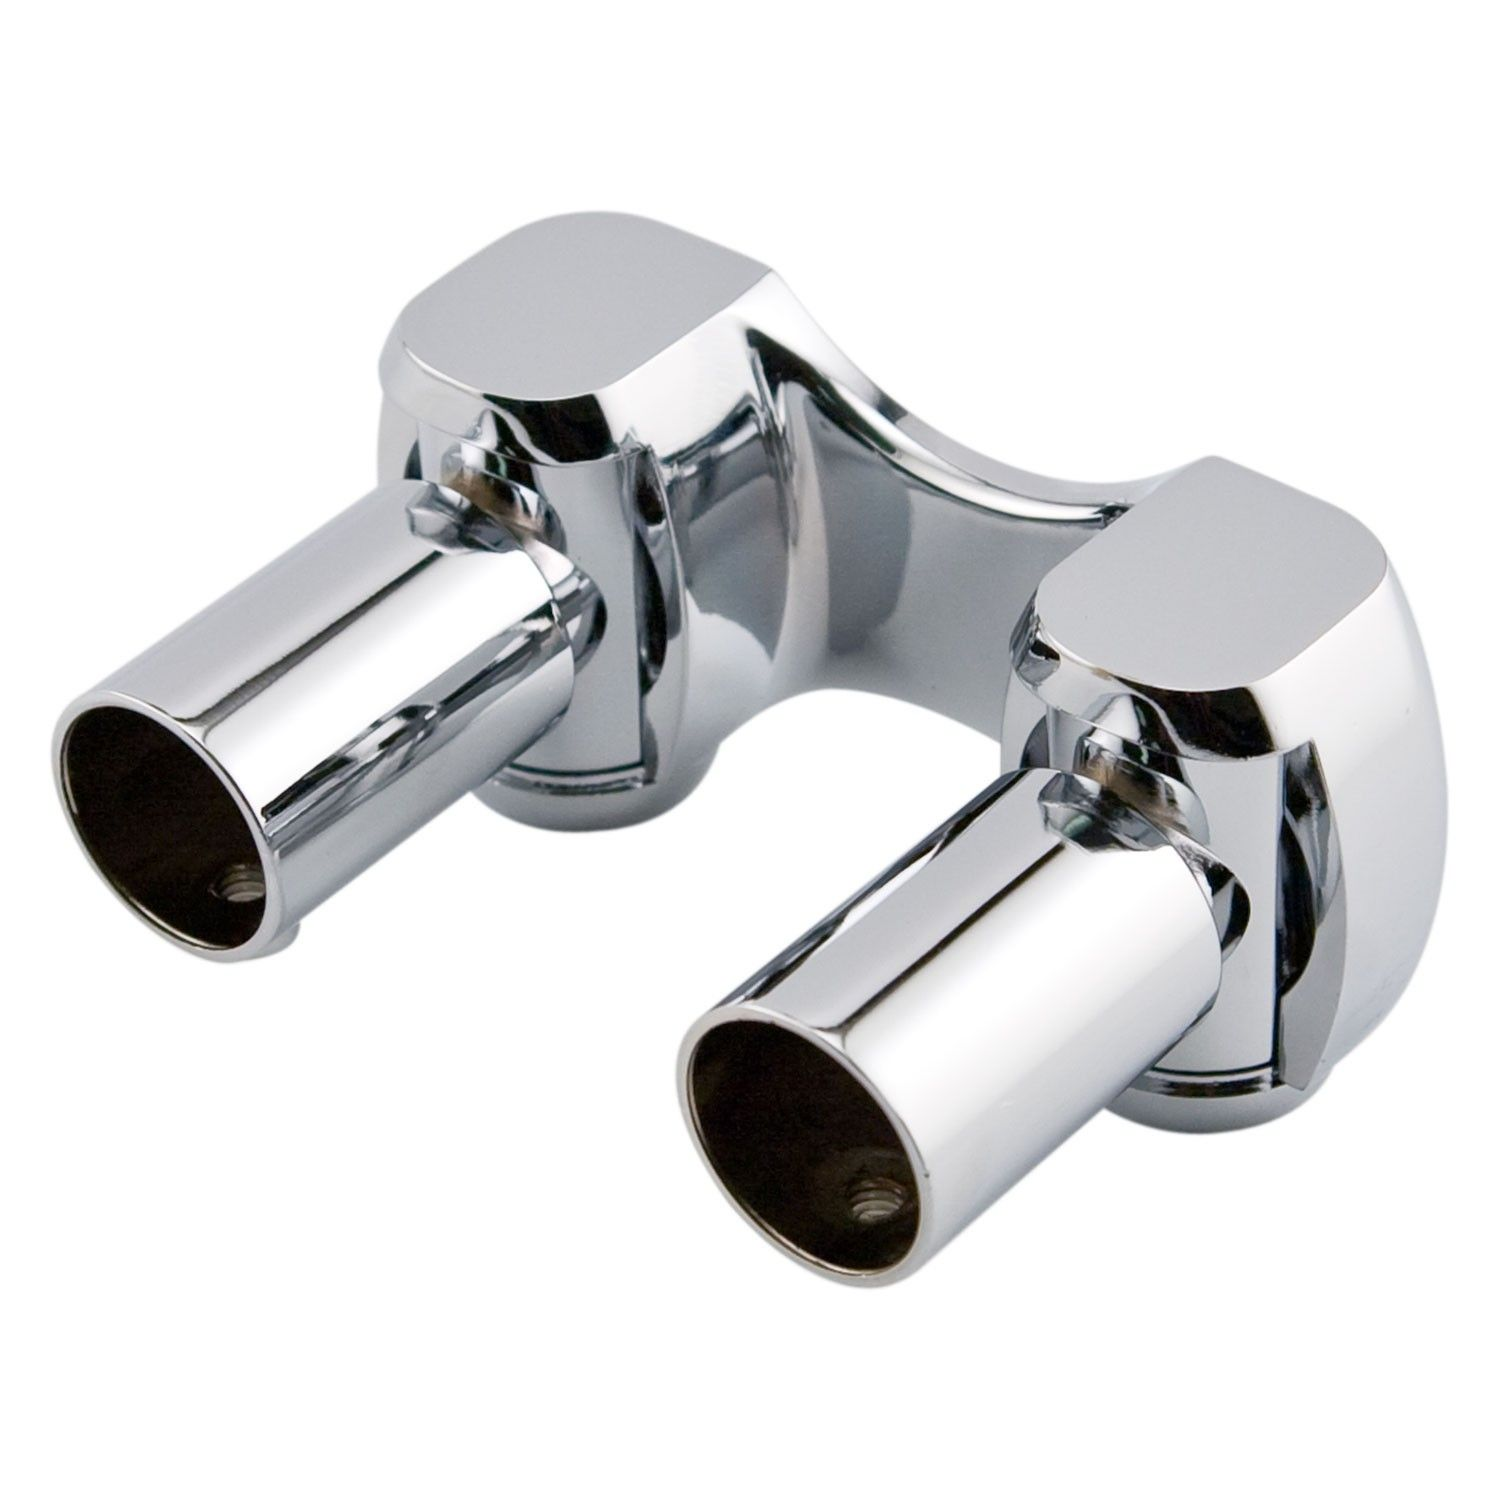 awesome double for brushed tension curtain rod inspiration shower ideas nickel curved smart